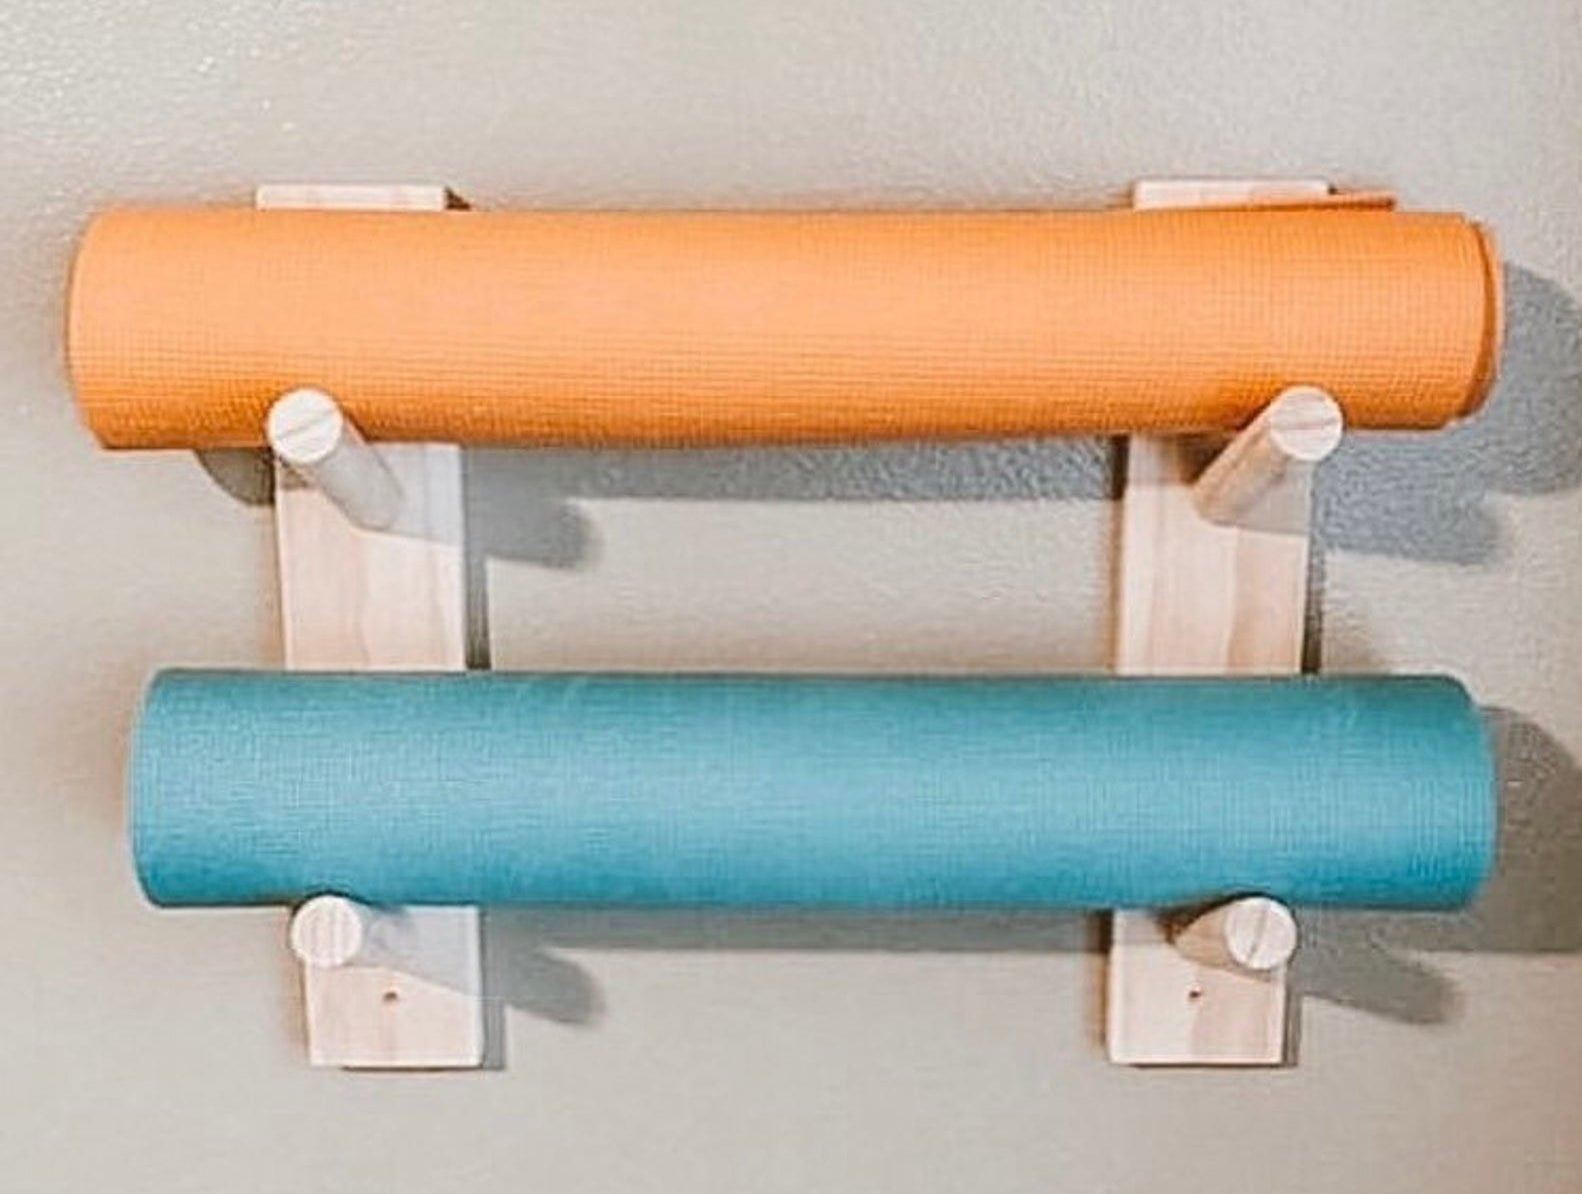 Wood rack with four pegs attached to a wall with two yoga mats between two of the pegs